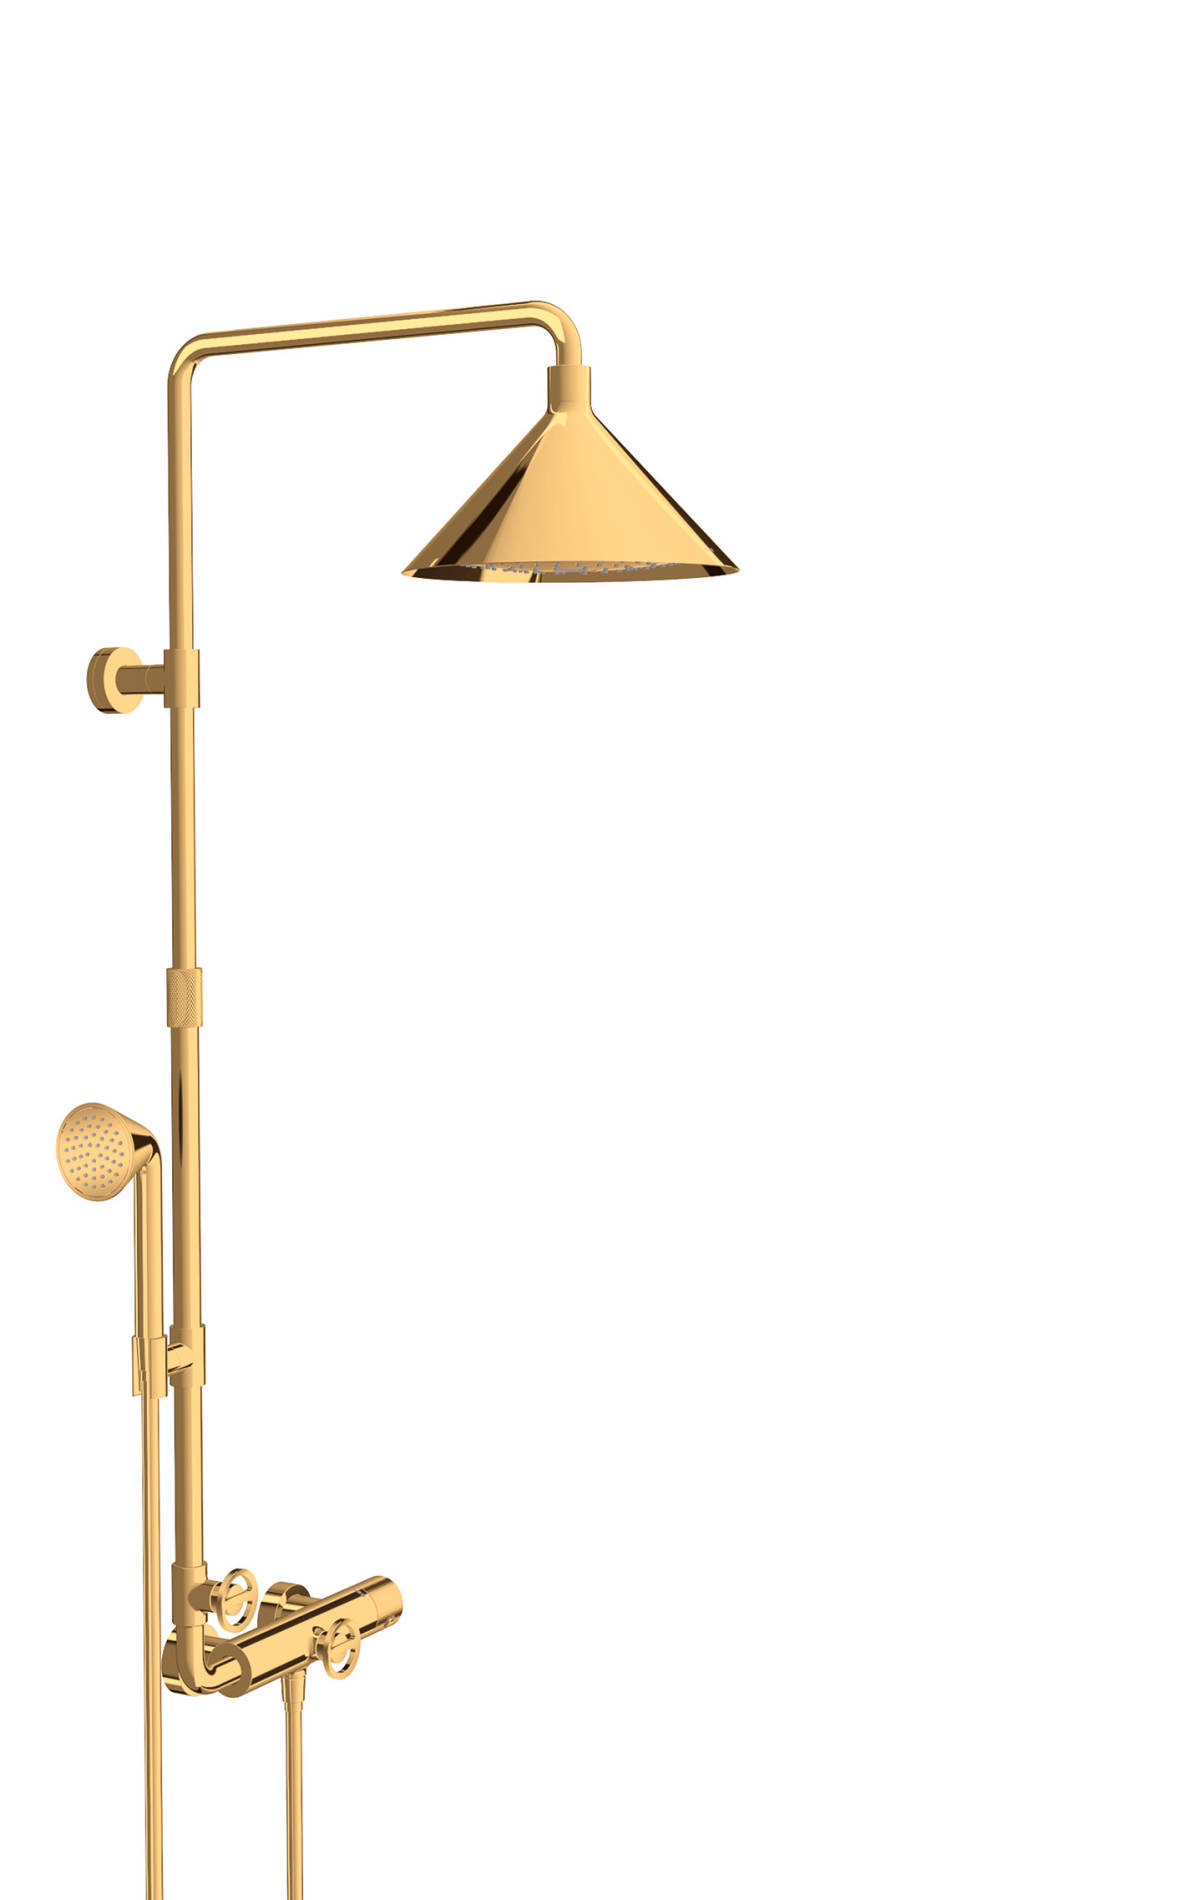 Showerpipe with thermostat and overhead shower 240 2jet, Polished Gold Optic, 26020990